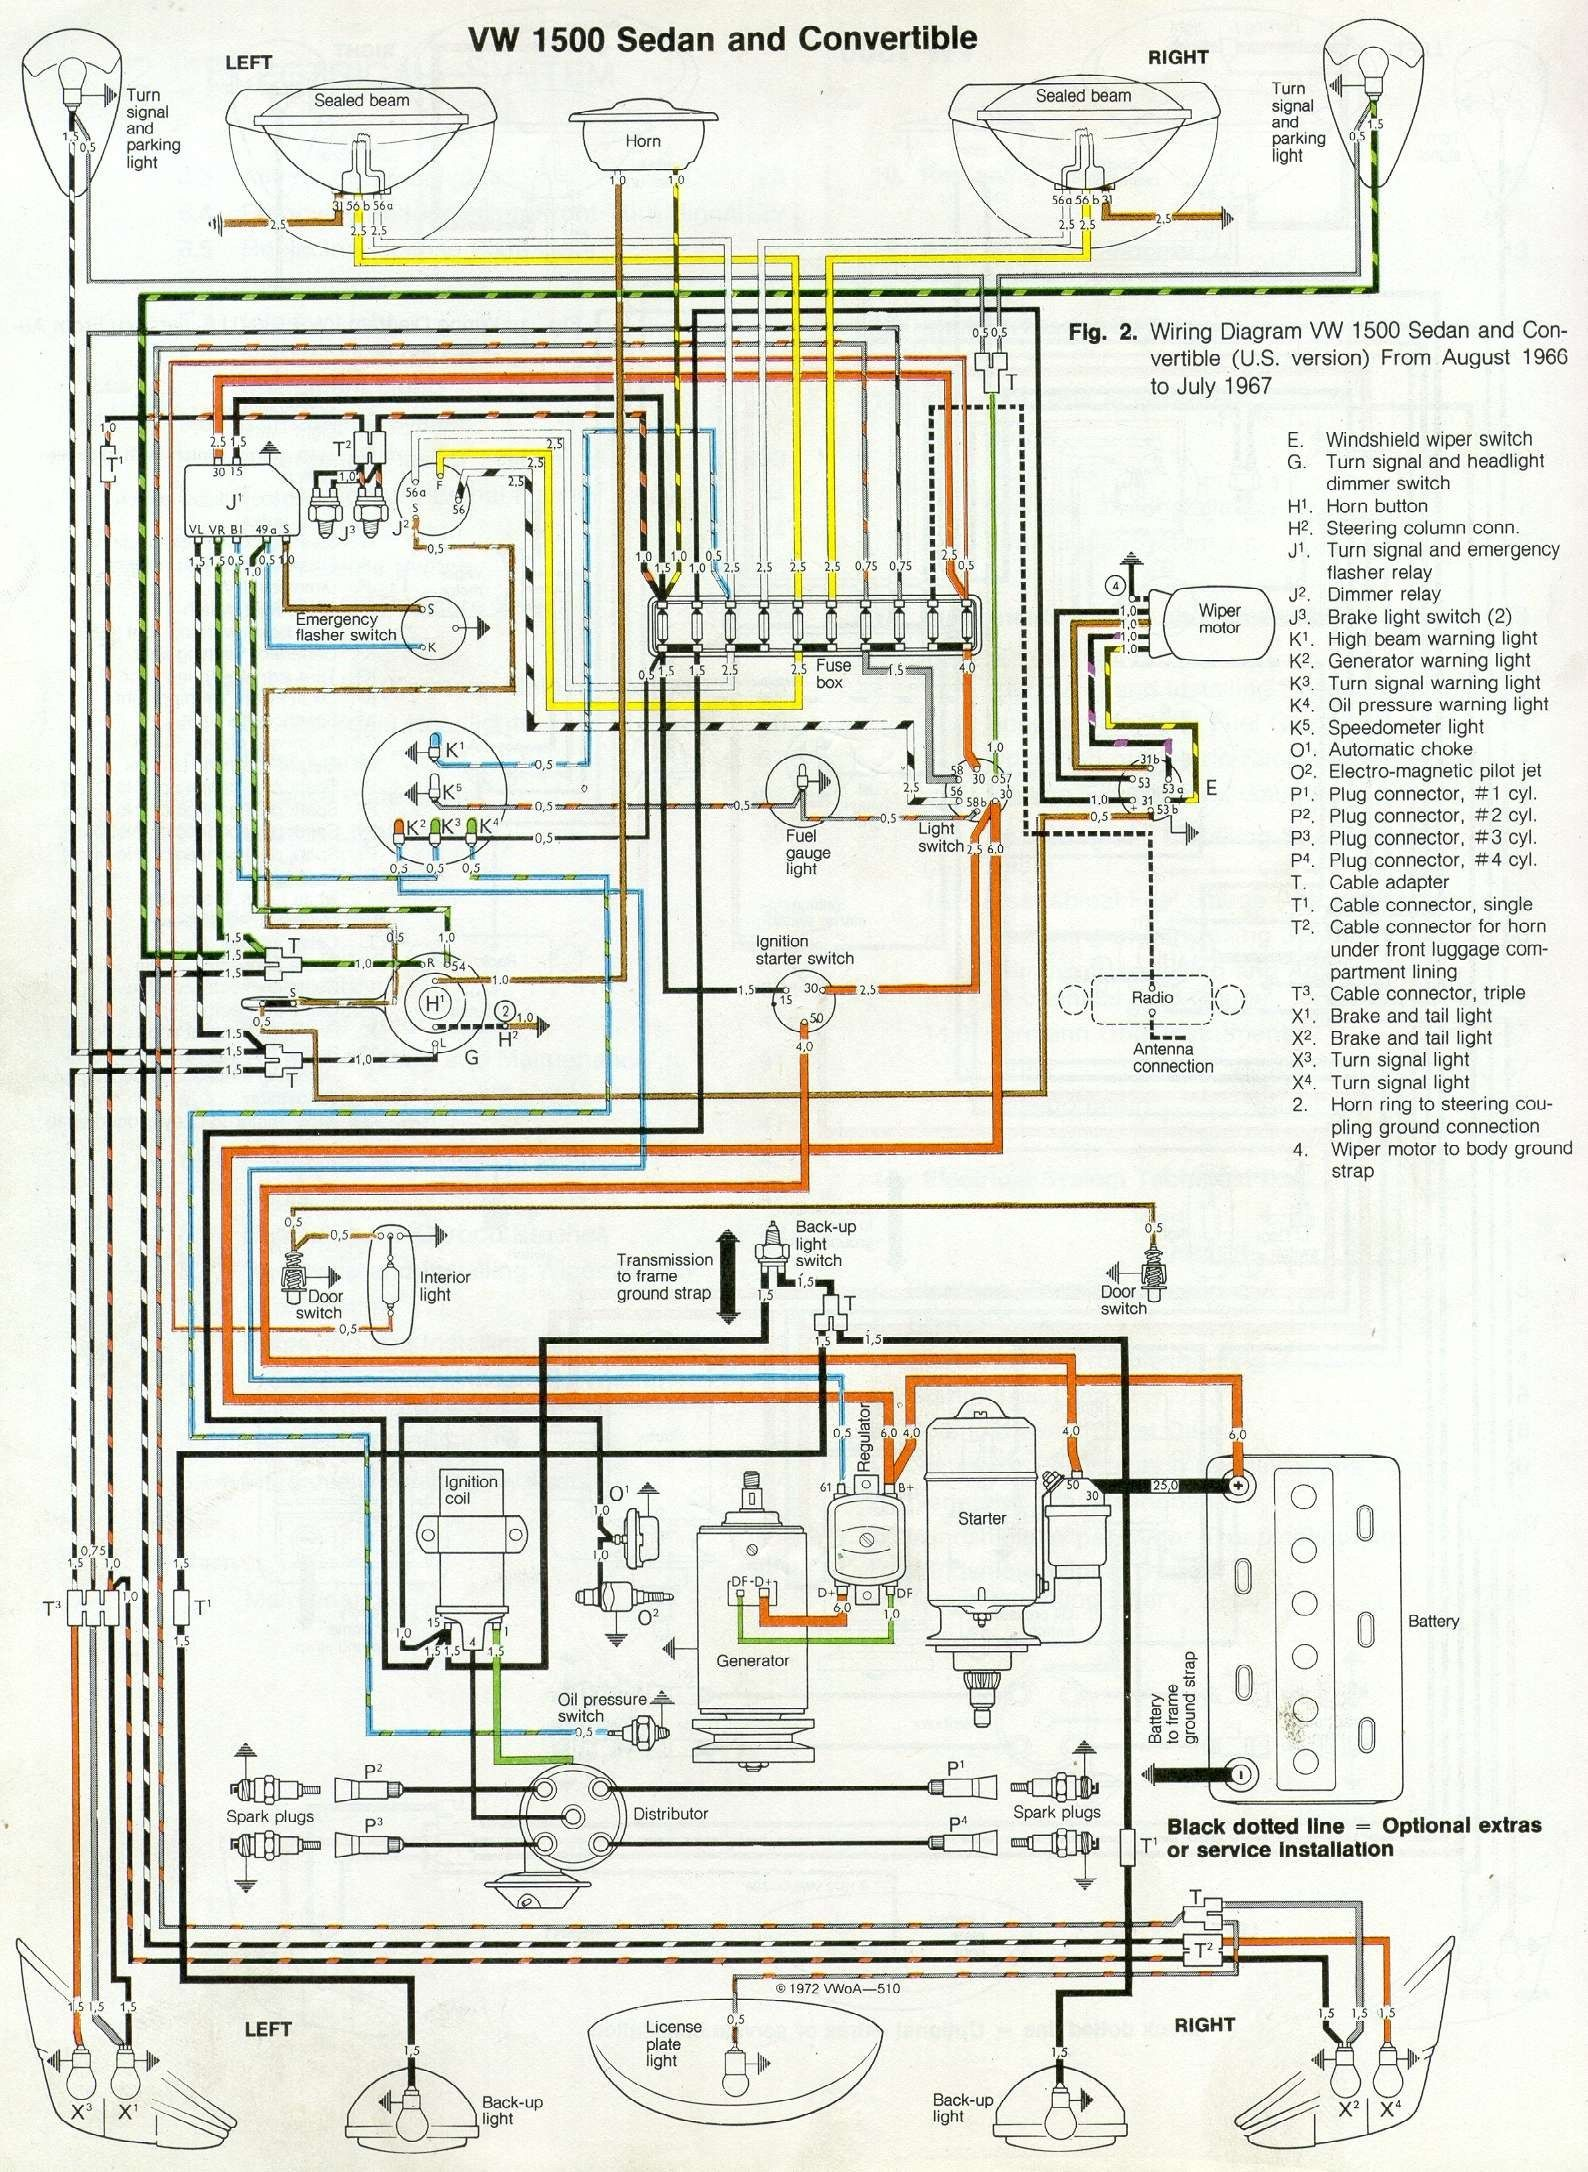 Vw Beetle Wiring Diagram 1966 Liftmaster Garage Door Opener Sensor 67 Harness Data 66 And Volkswagen Beetles Car Stereo